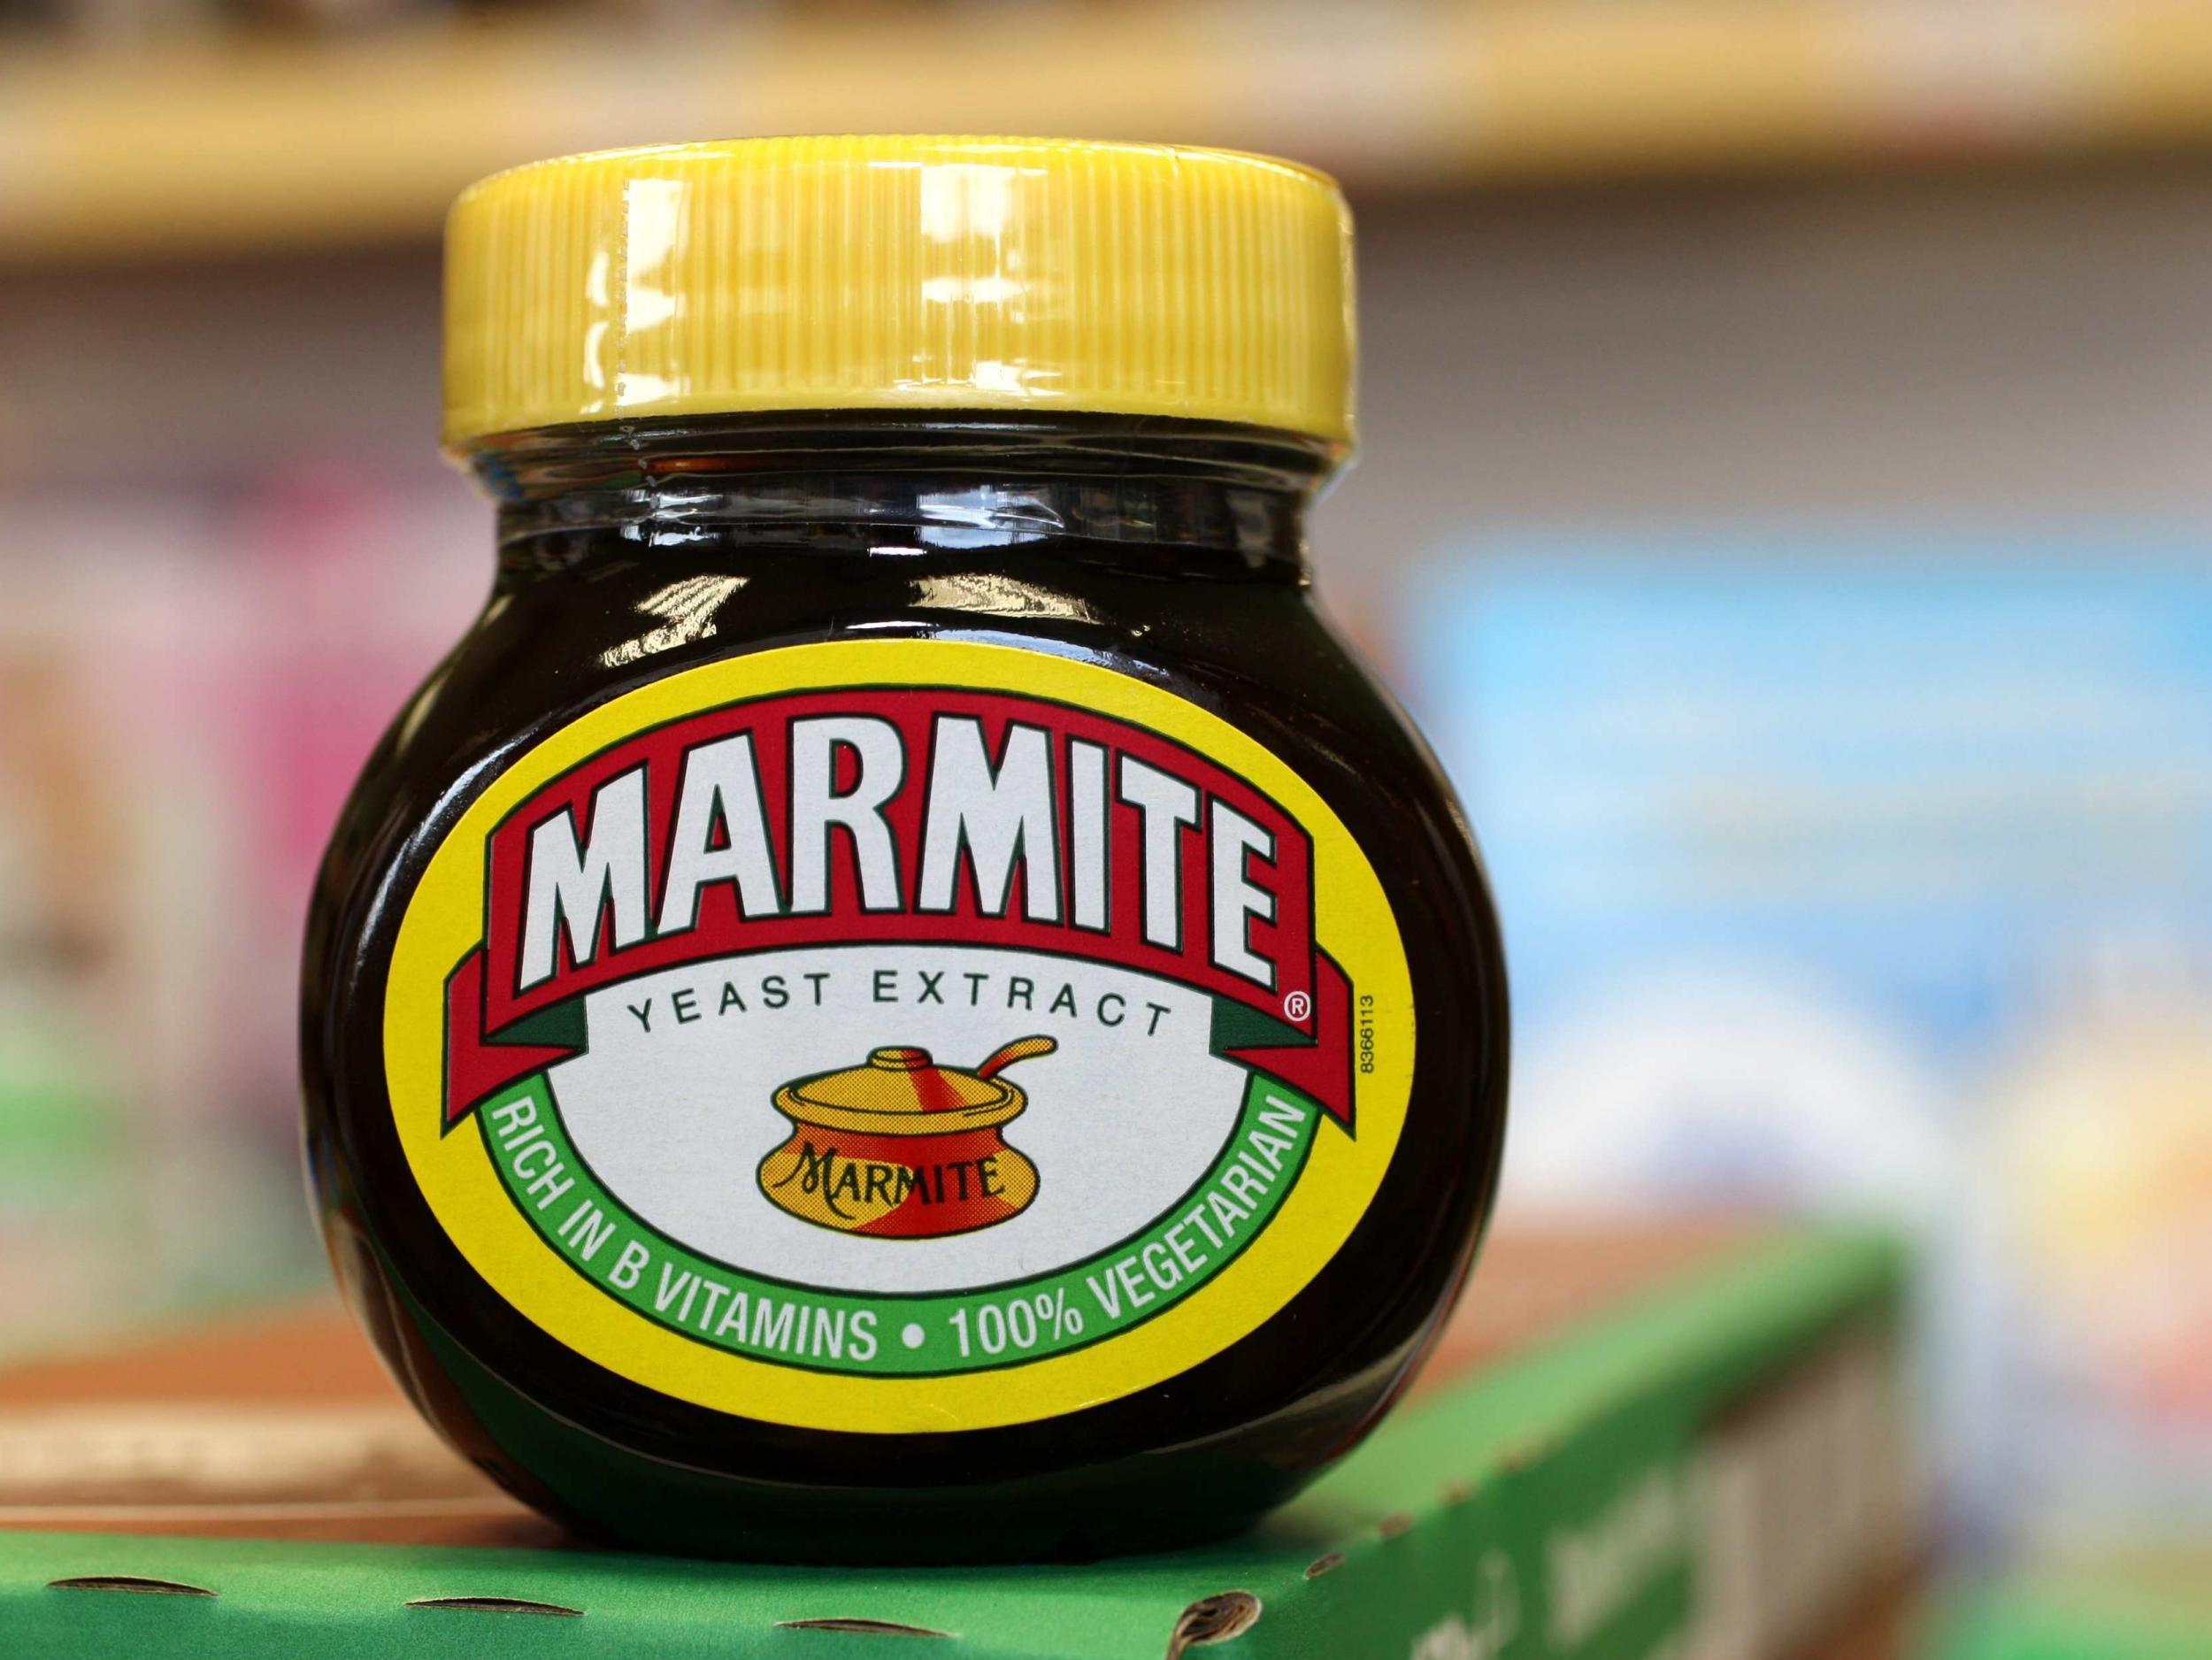 Tesco Running Out Of Products Like Marmite And Pg Tips